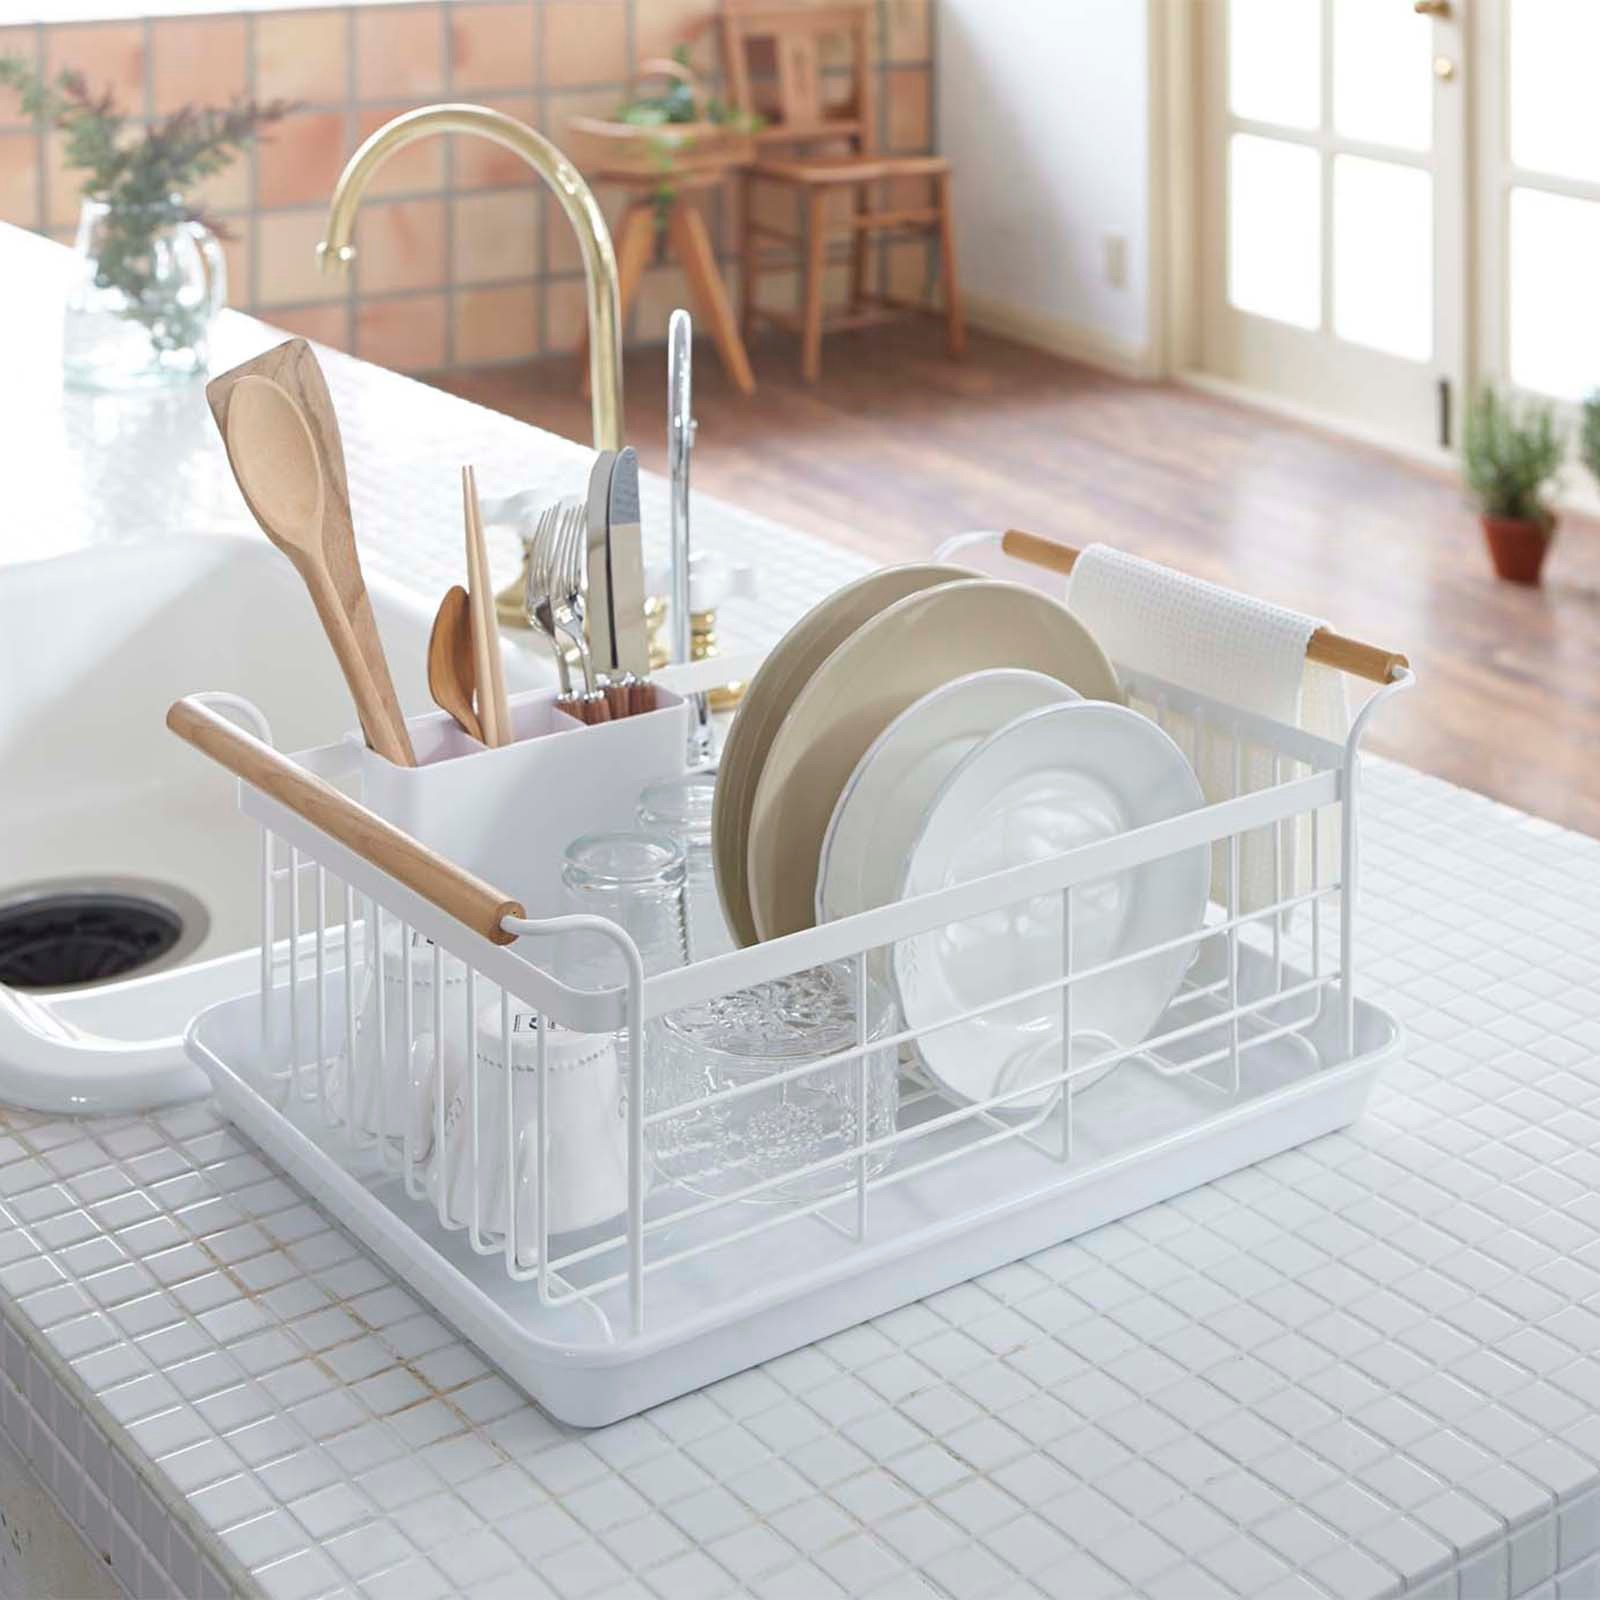 Countertop Dishwasher Japanese : Tosca Drainer Rack by Yamazaki Home Wedding Planning, Registry ...